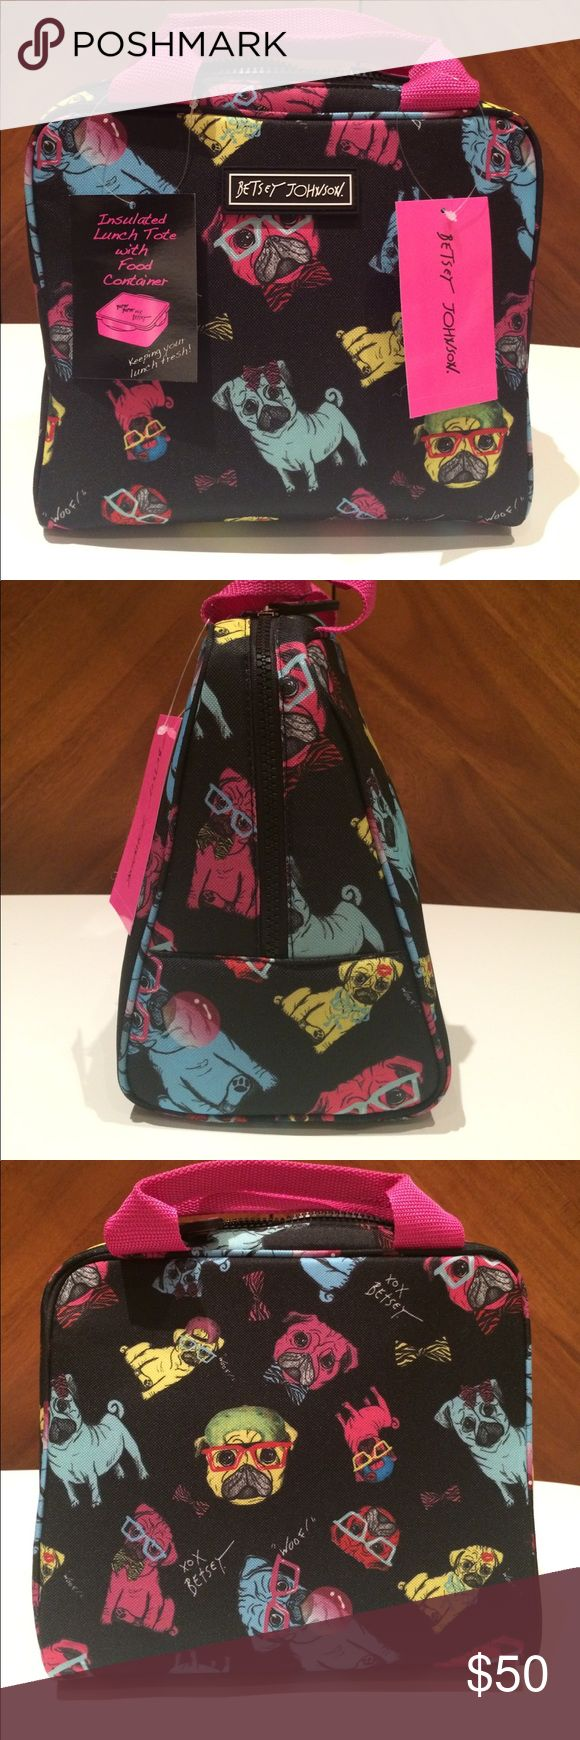 2Pc Betsey Johnson Pugs in Glasses Lunch Tote Tub Three authentic Betsey Johnson insulated lunch tote with matching Betsey xox Tupperware. The pugs on black print is super adorable and hard to find! Price firm, no trades. New, tags still attached. Betsey Johnson Bags Totes